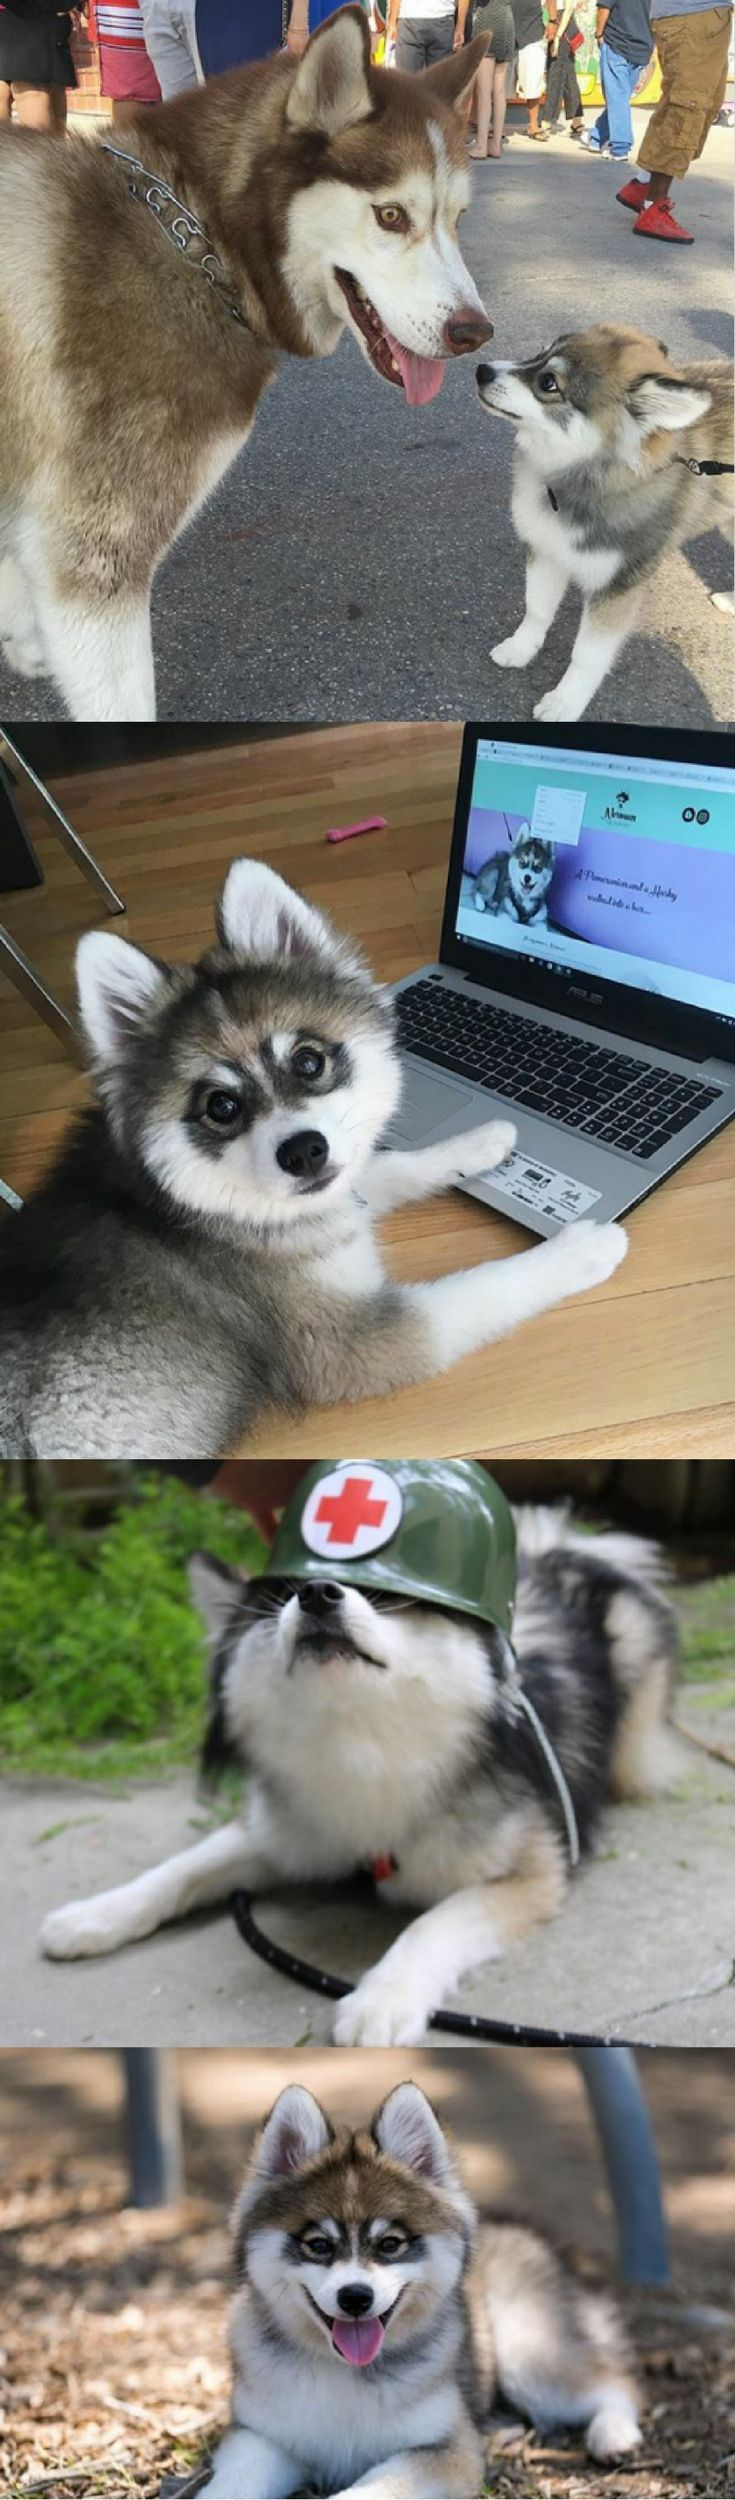 Ever seen a cross between a Husky and a Pomeranian? Well if the answer is no then you're in for a real treat.